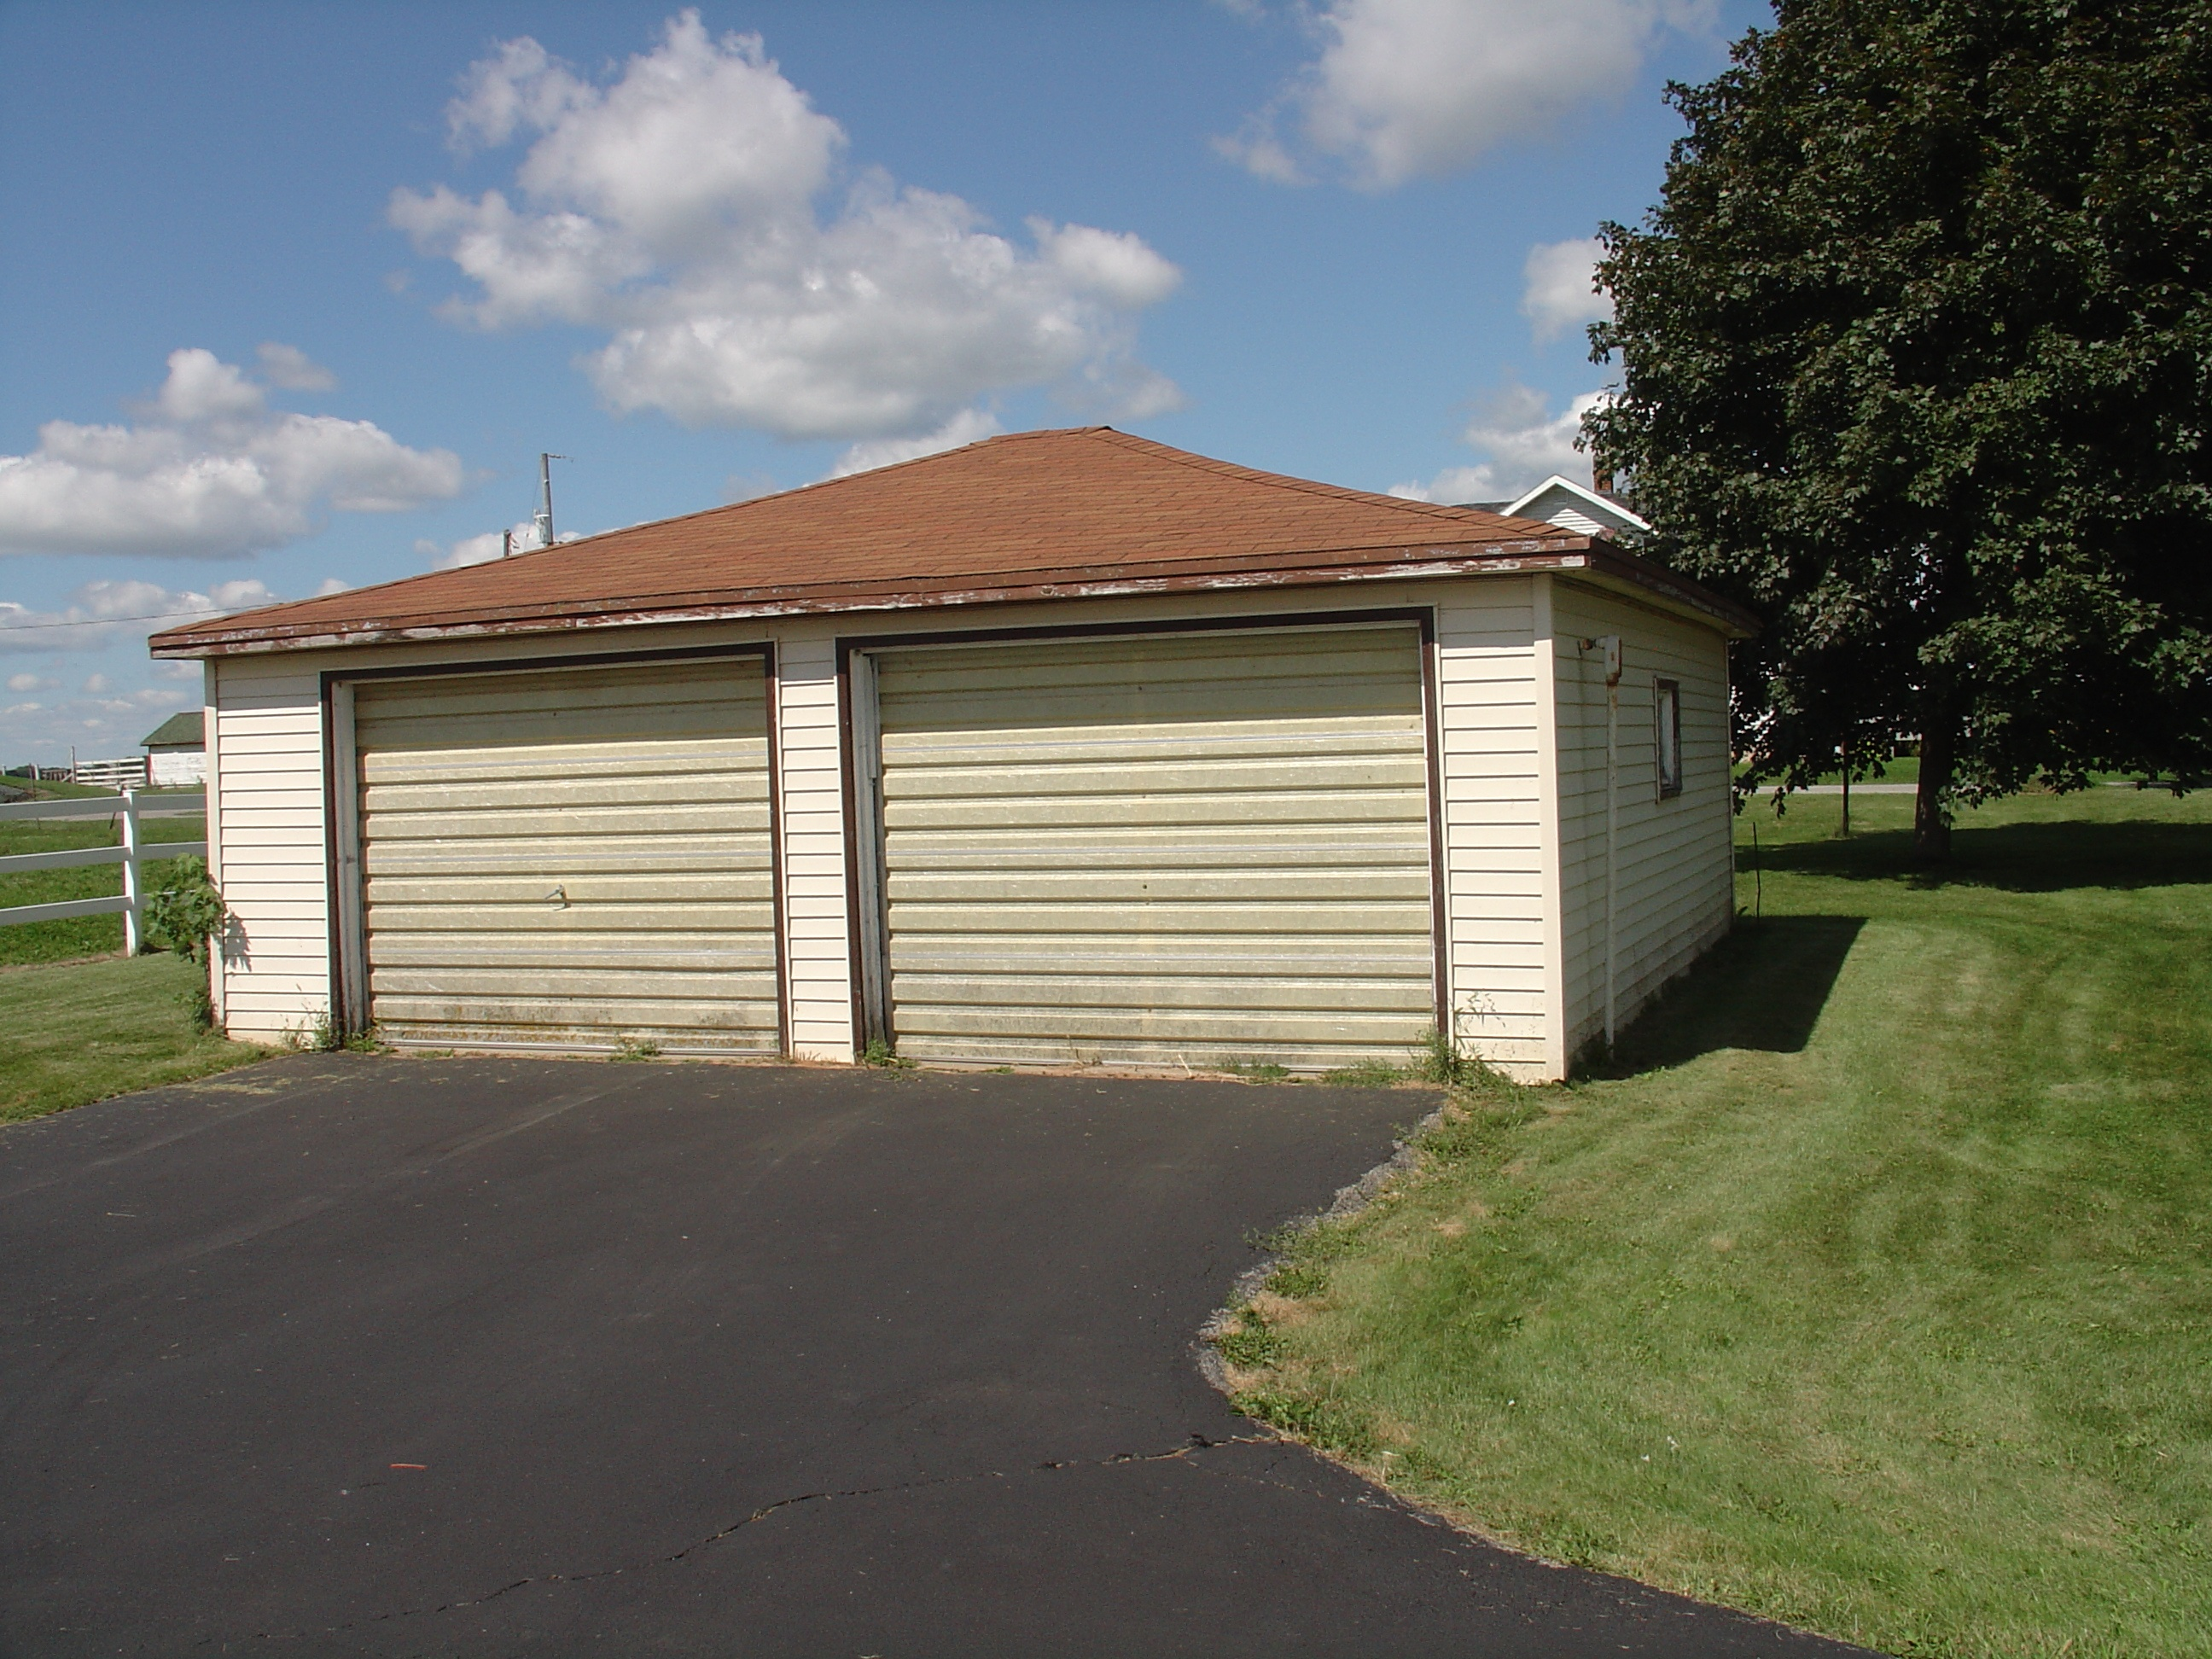 hardwood-floor-garage-original-location.jpg